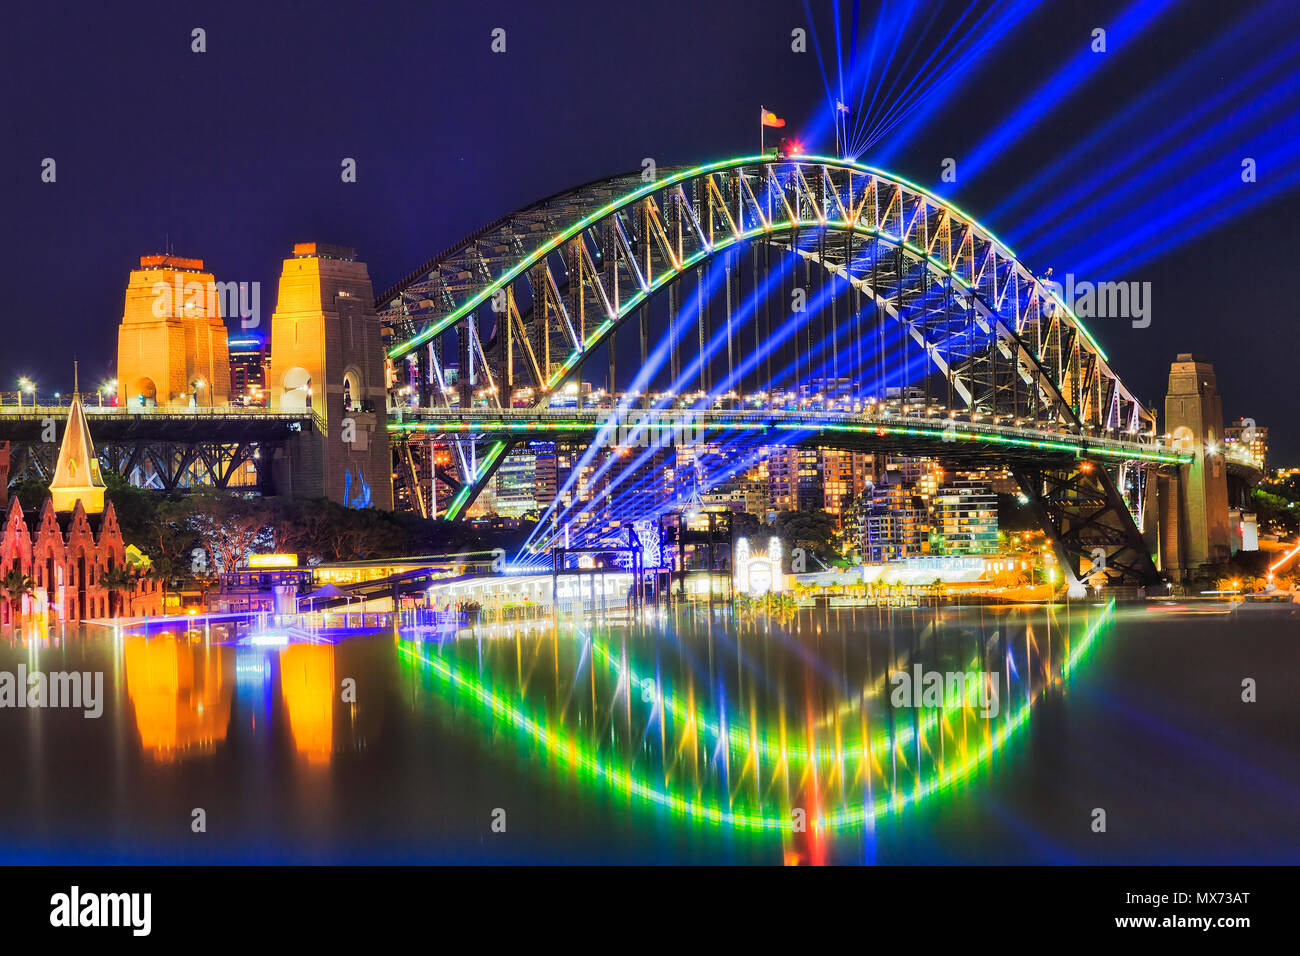 Blue bright beams of laser under arch of the Sydney harbour bridge during Vivid Sydney light show festival with reflection of lights. Stock Photo